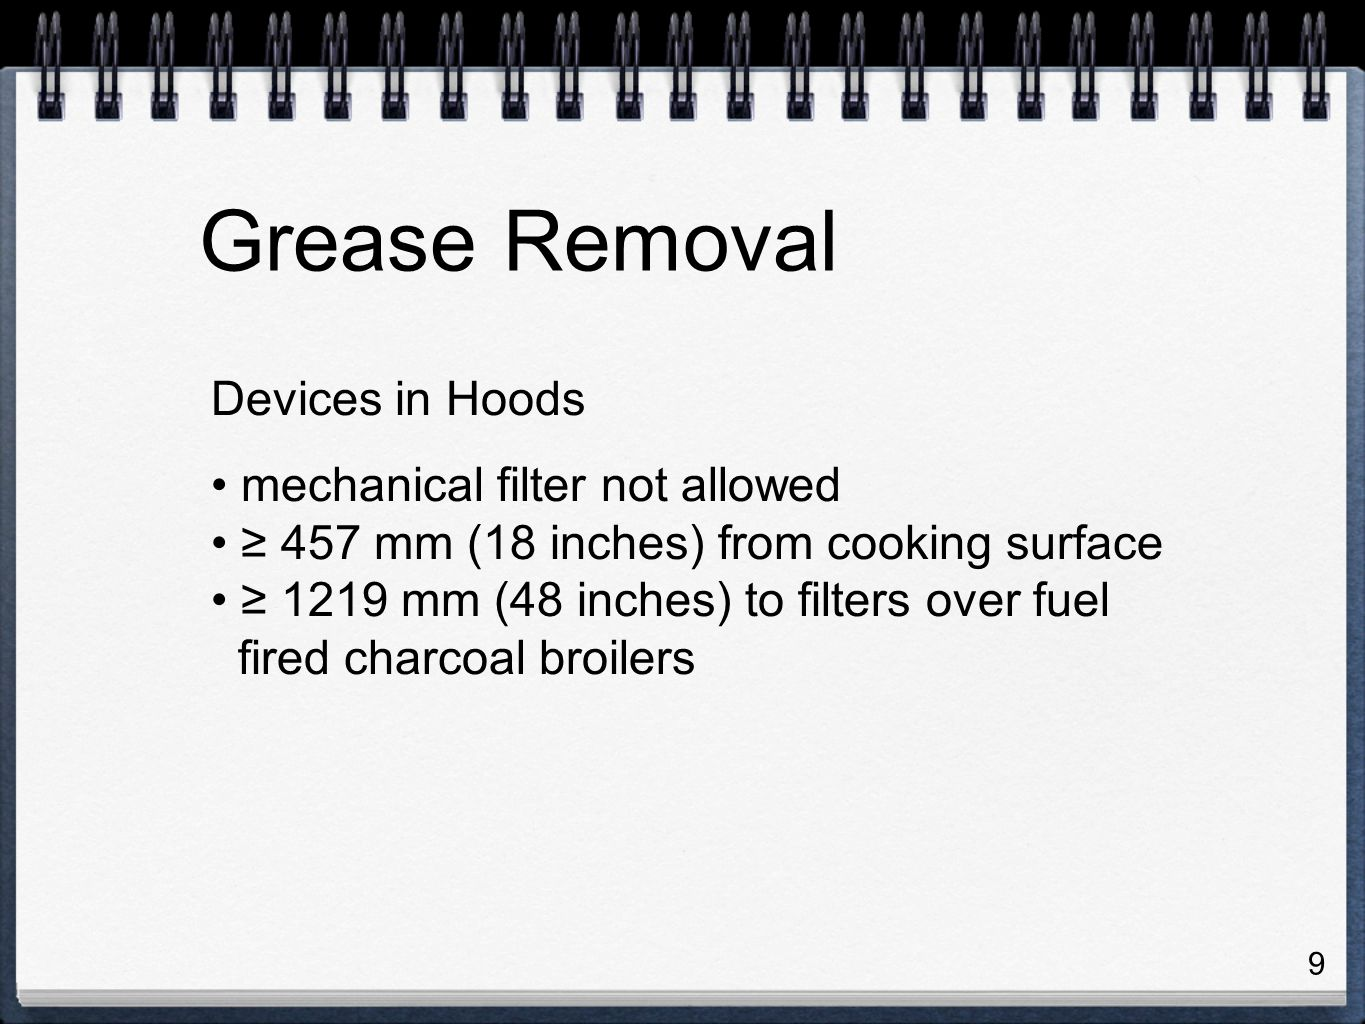 9 Devices in Hoods mechanical filter not allowed ≥ 457 mm (18 inches) from cooking surface ≥ 1219 mm (48 inches) to filters over fuel fired charcoal broilers Grease Removal